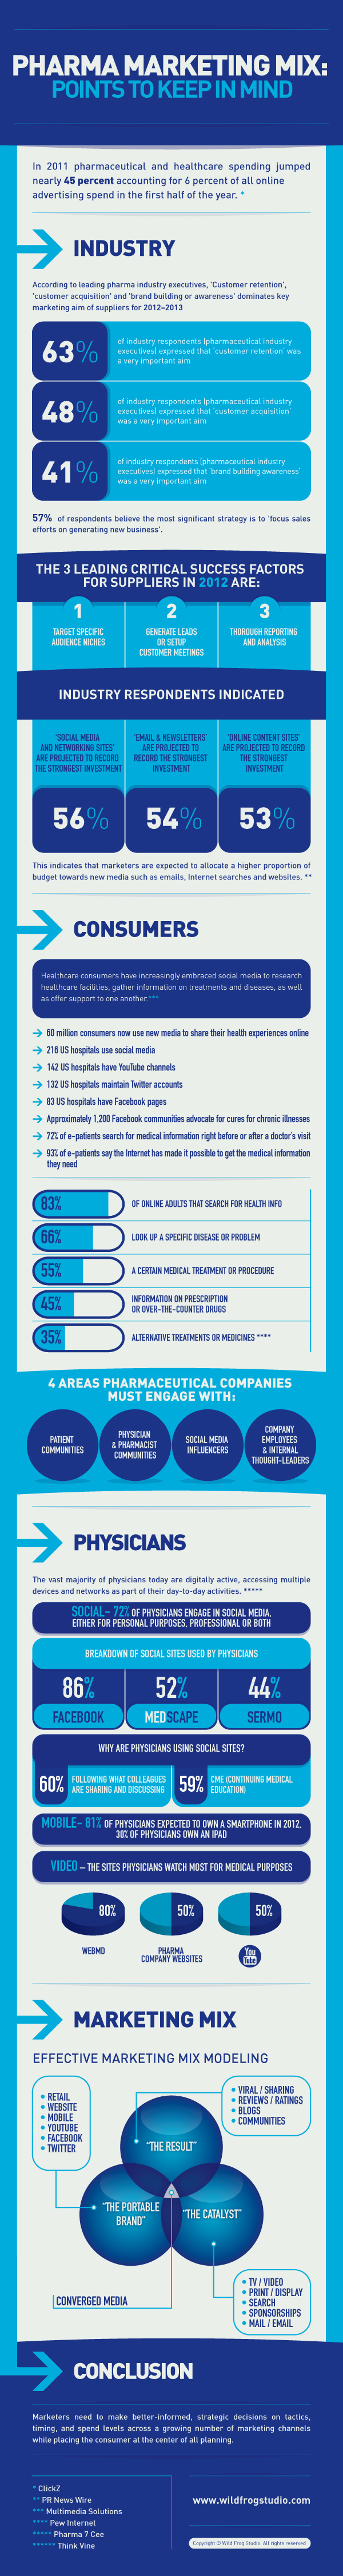 pharma-marketing-infographic